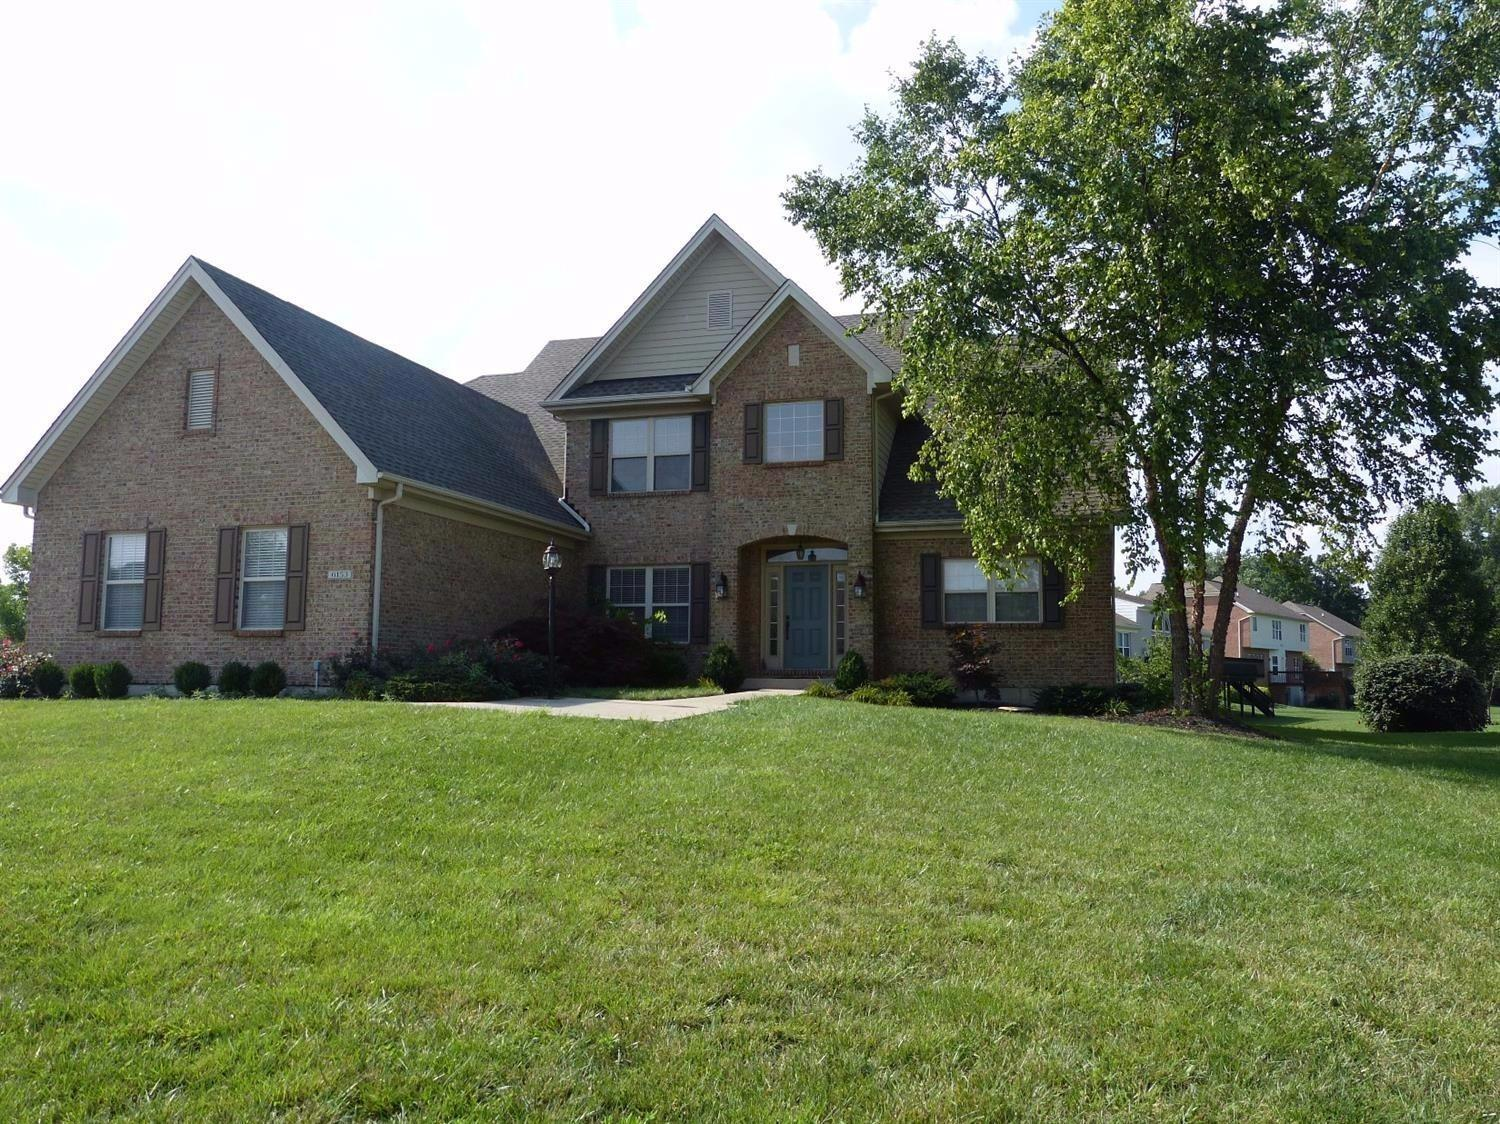 6153 Fairway Drive, Mason, OH 45040